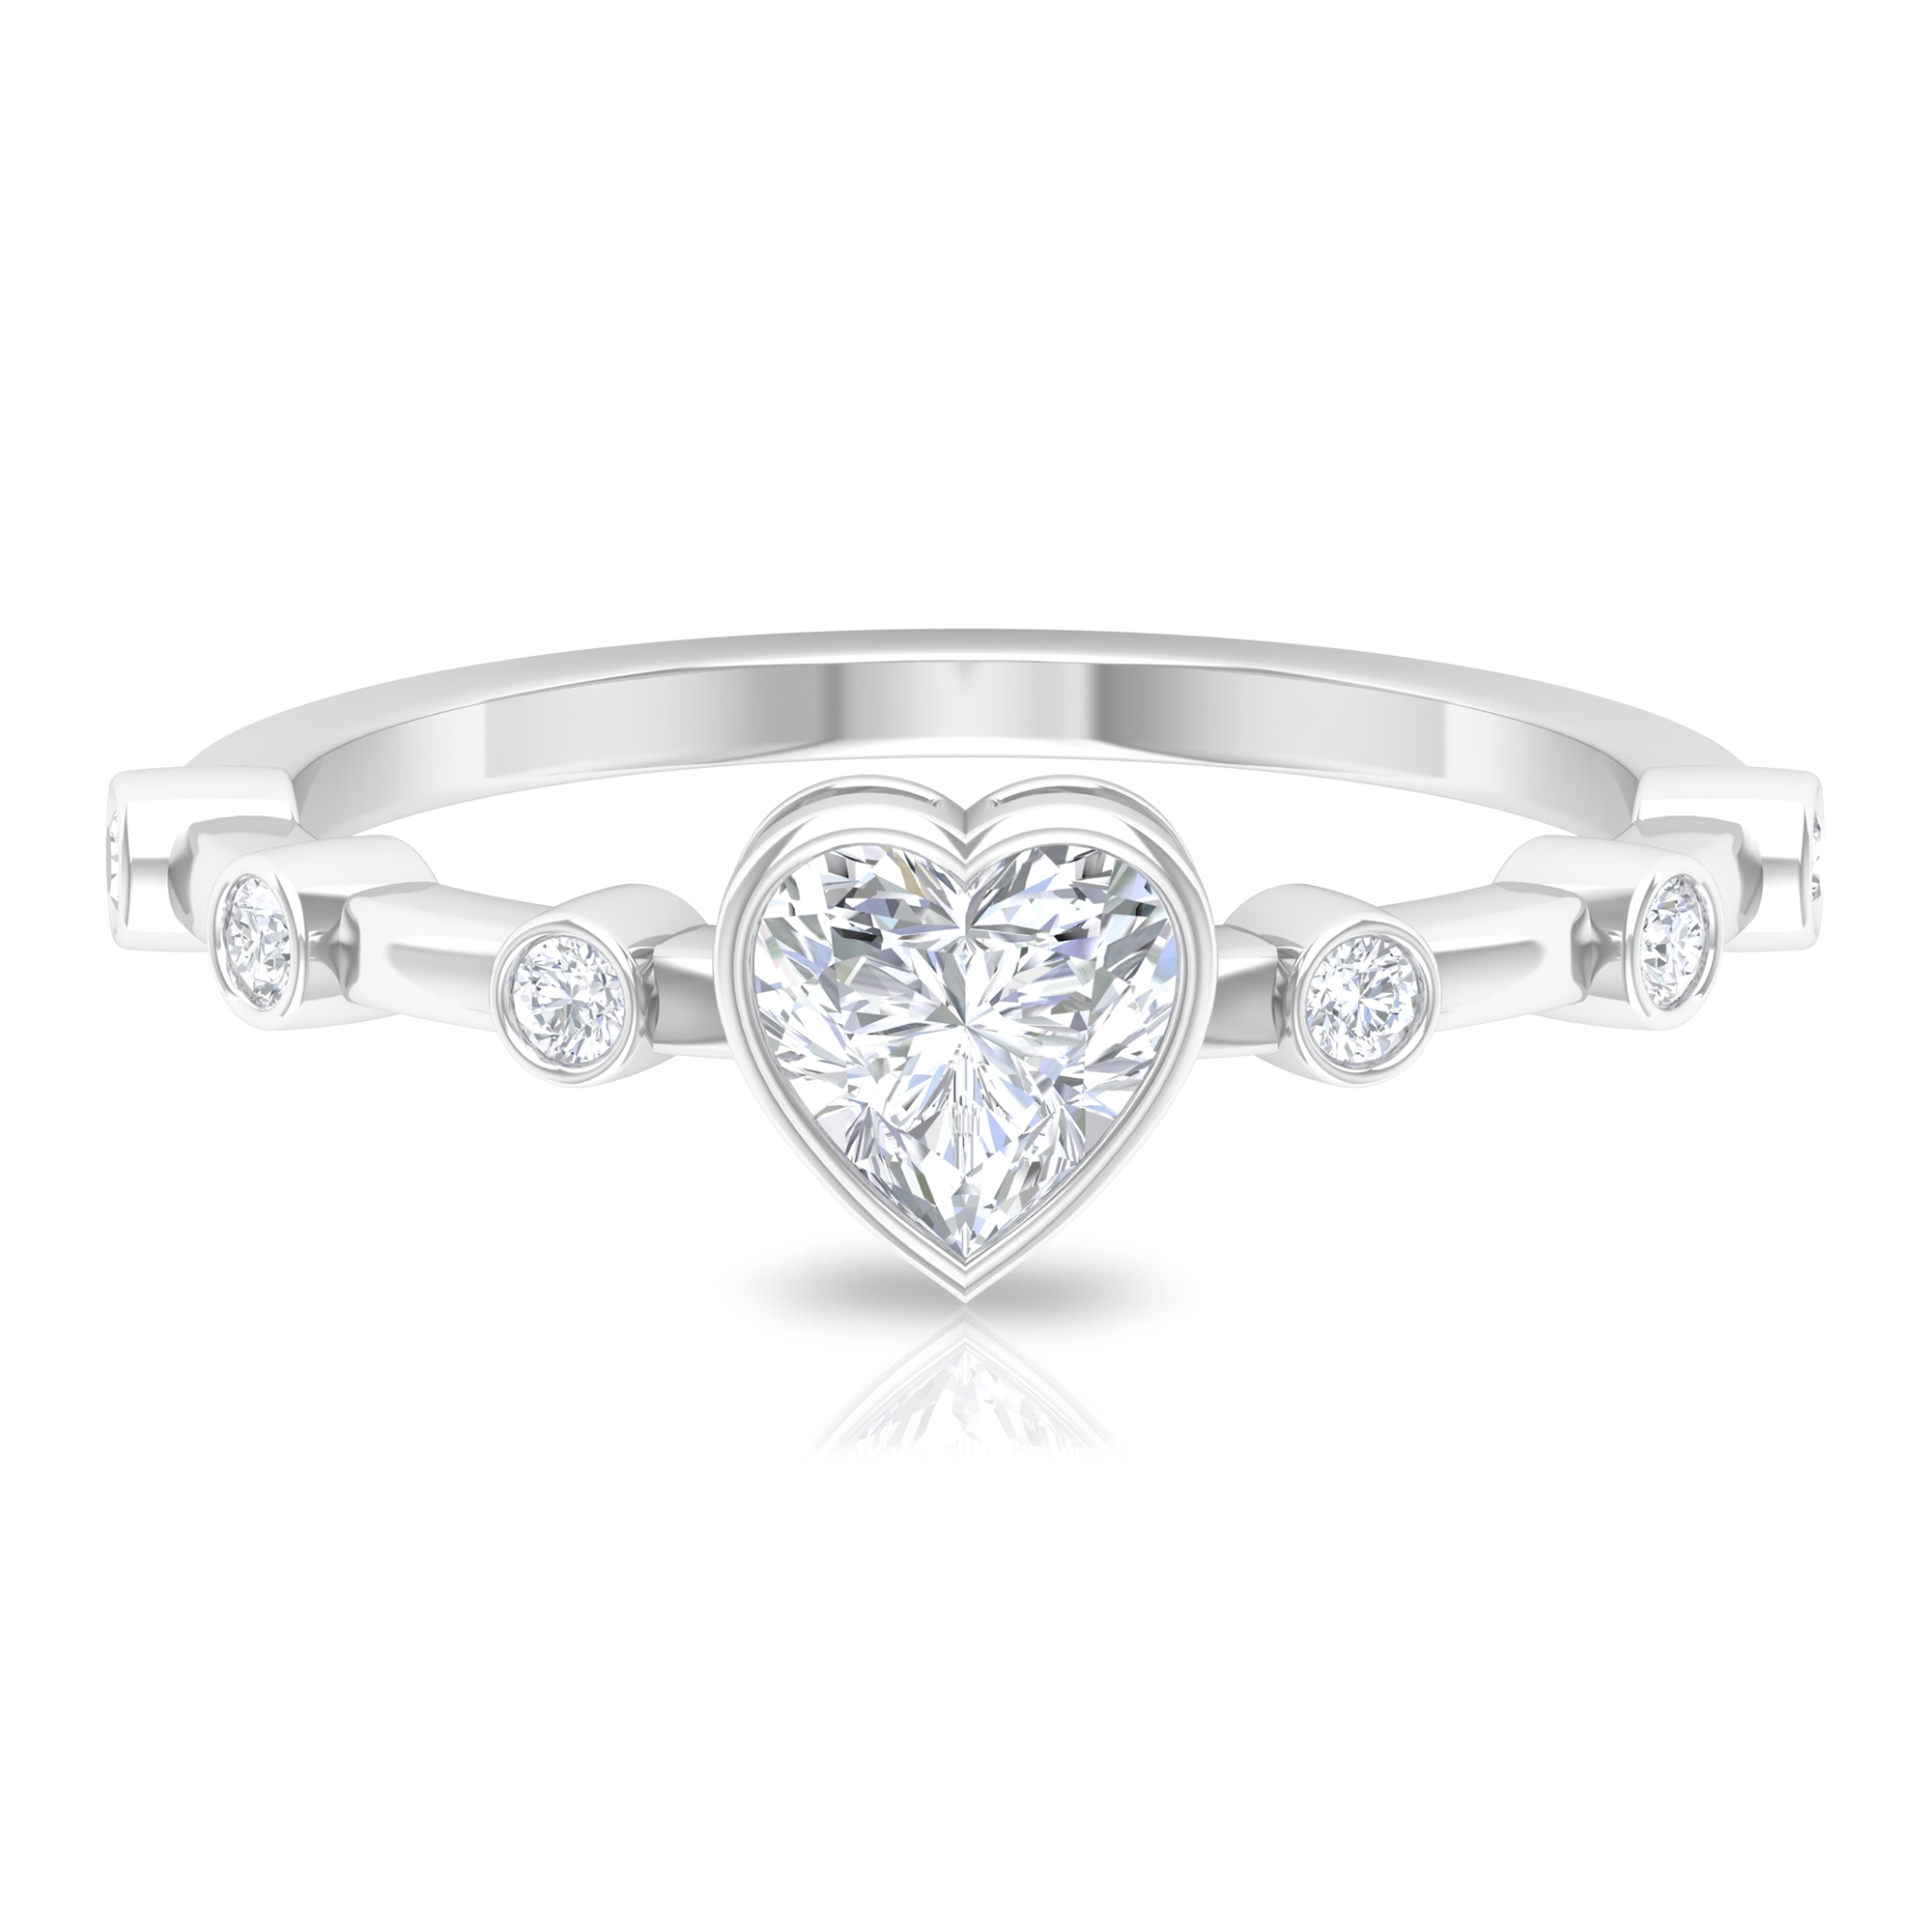 3/4 CT Heart Shape Diamond Solitaire Ring in Bezel Setting with Spaced Set Side Stones